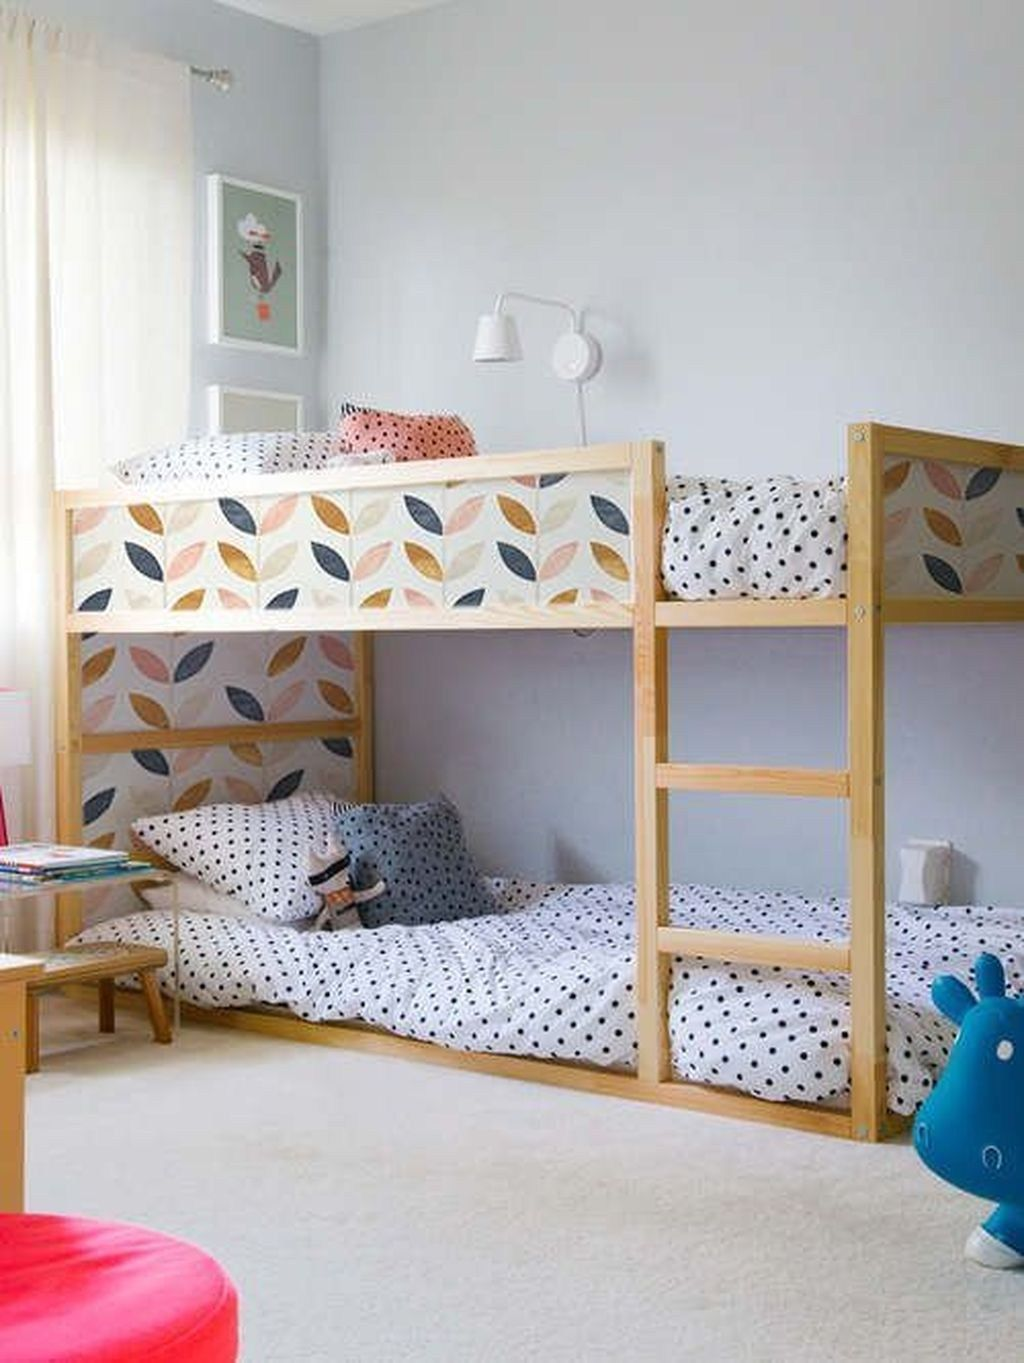 cool ikea kura beds ideas for your kids room11 frieda leni pinterest lit enfant et. Black Bedroom Furniture Sets. Home Design Ideas